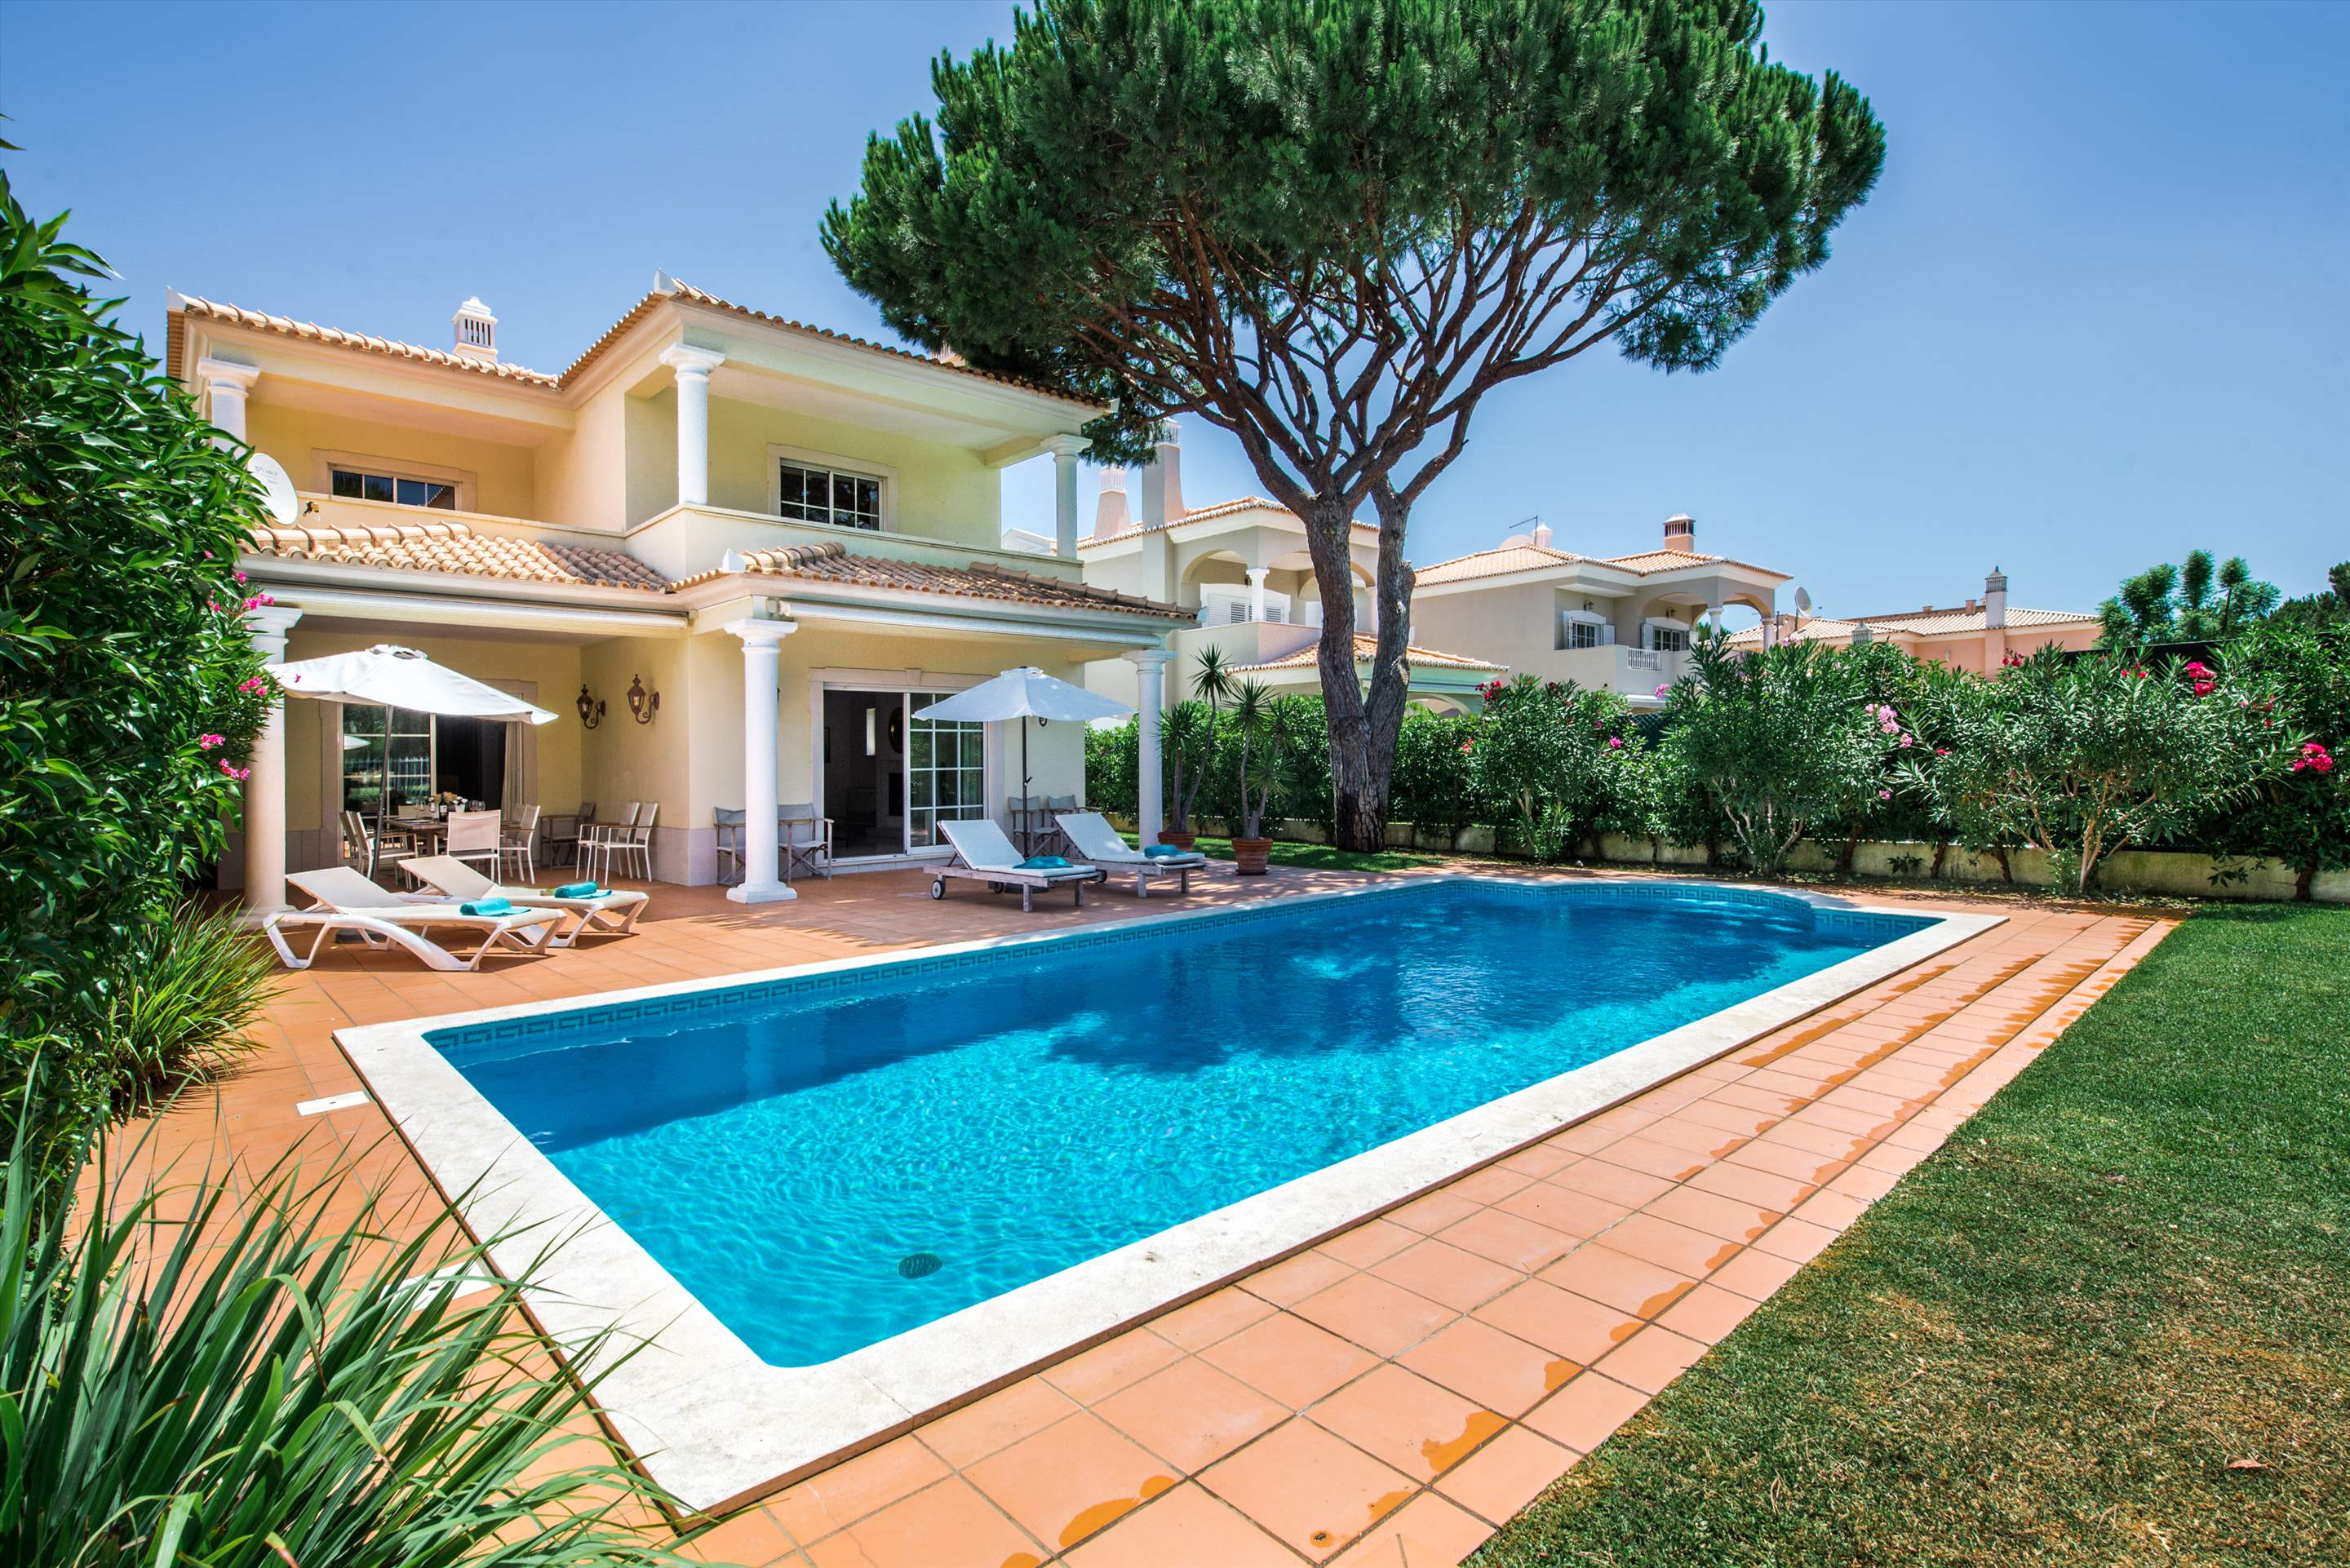 Vivenda Anita 1, 4 bedroom villa in Vilamoura Area, Algarve Photo #1